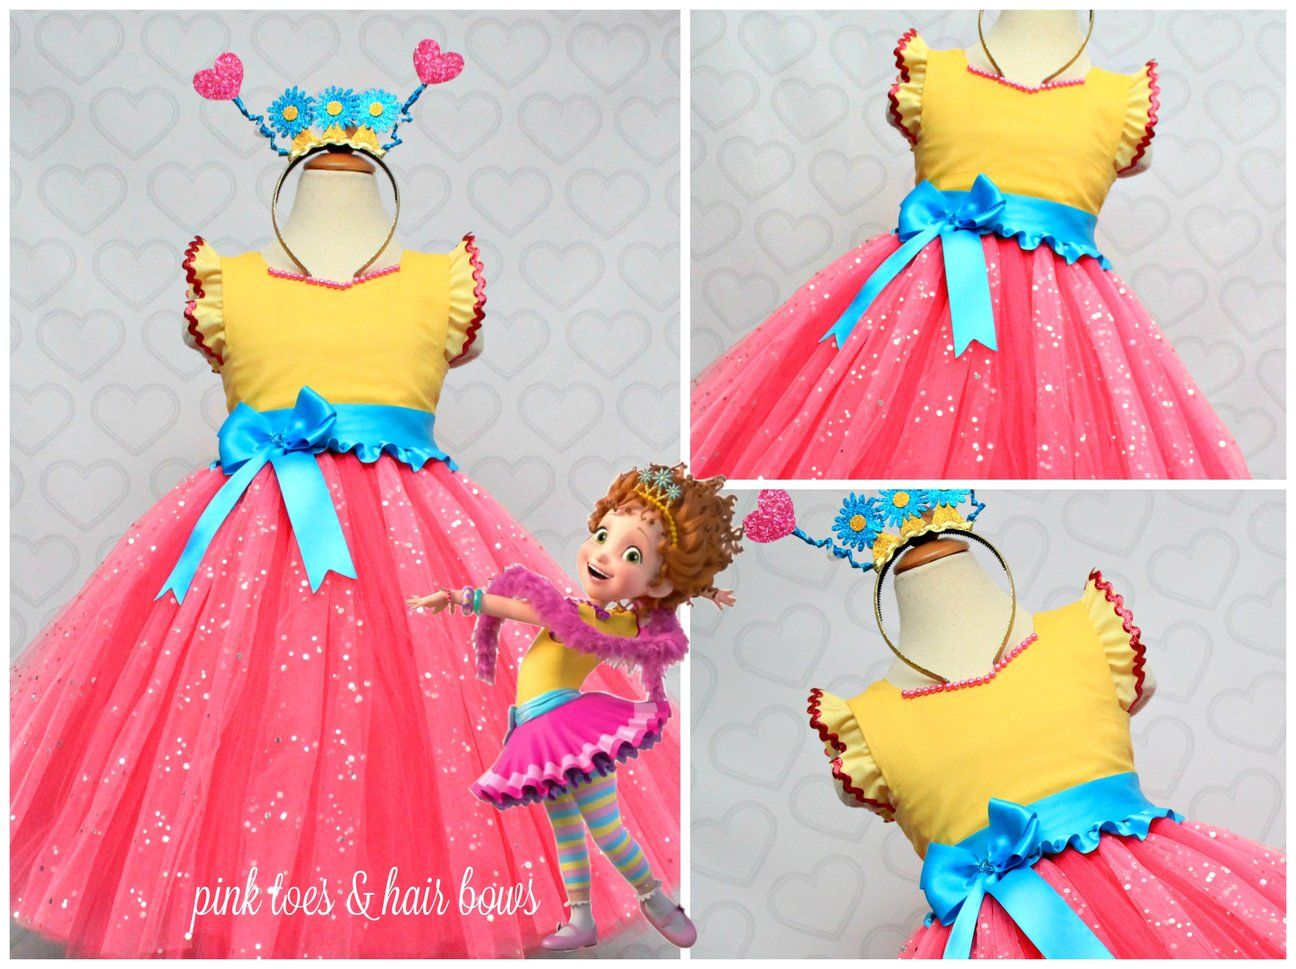 512c370335e68 Our Fancy nancy tutu dress is so adorable and perfect for your little one!  This dress is embellished with custom handmade accents,ruffles,trim and  more!